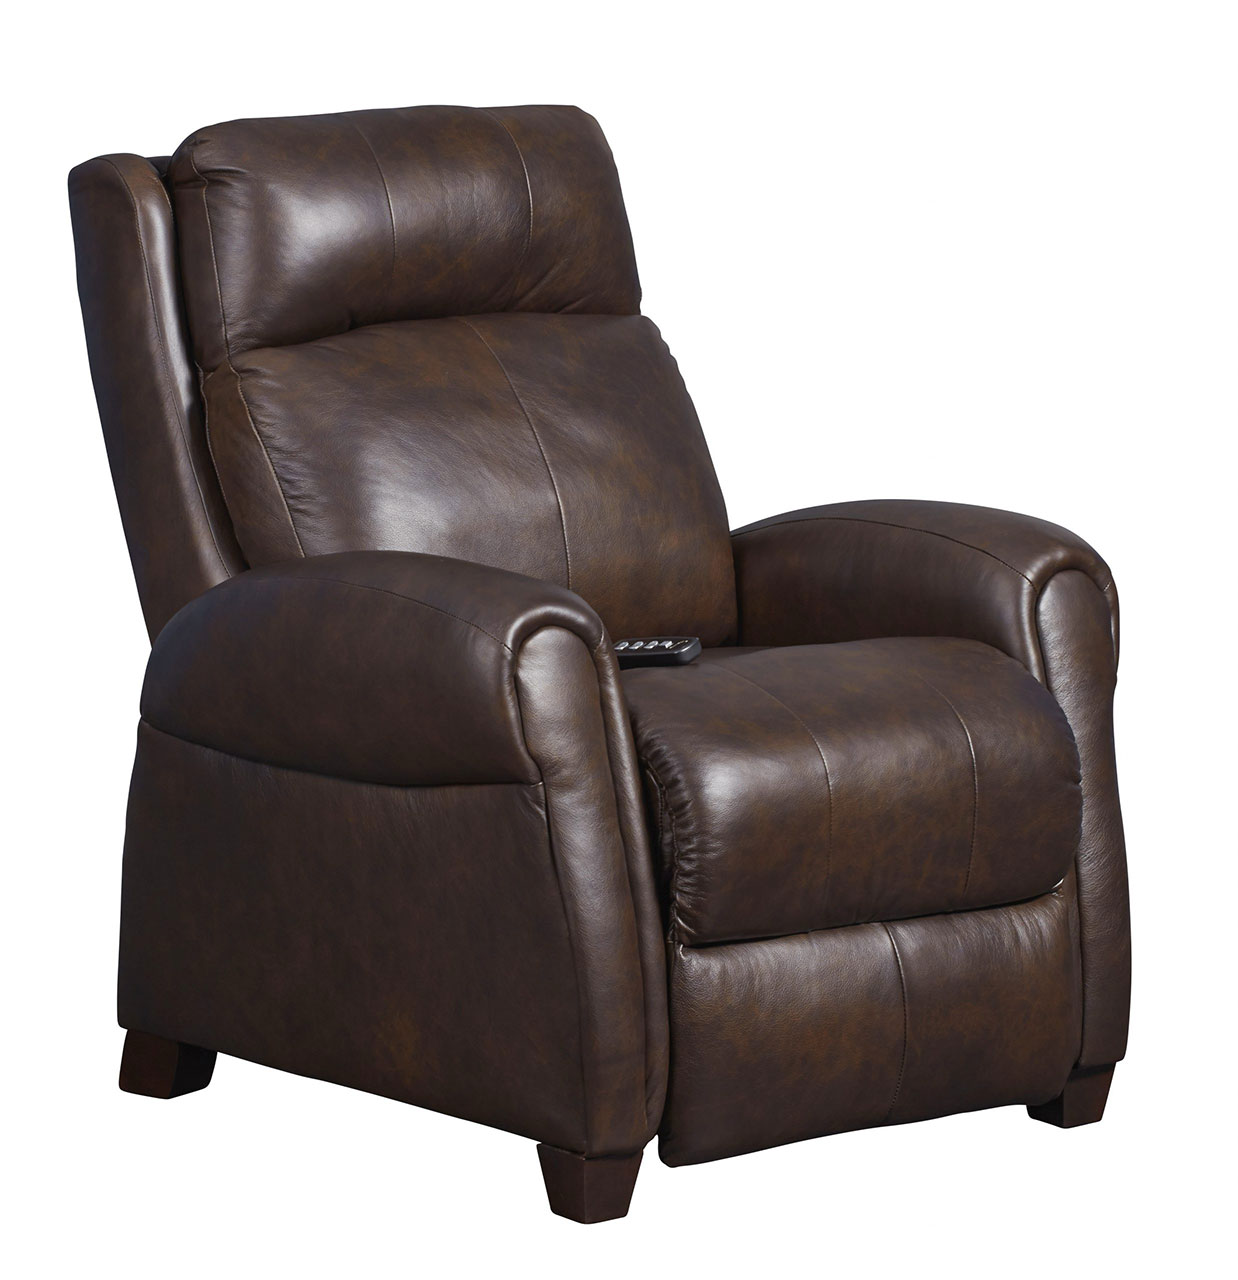 6074p-saturn-in-970-21-eastwood-colorado-recliner-sweep-scaled_web